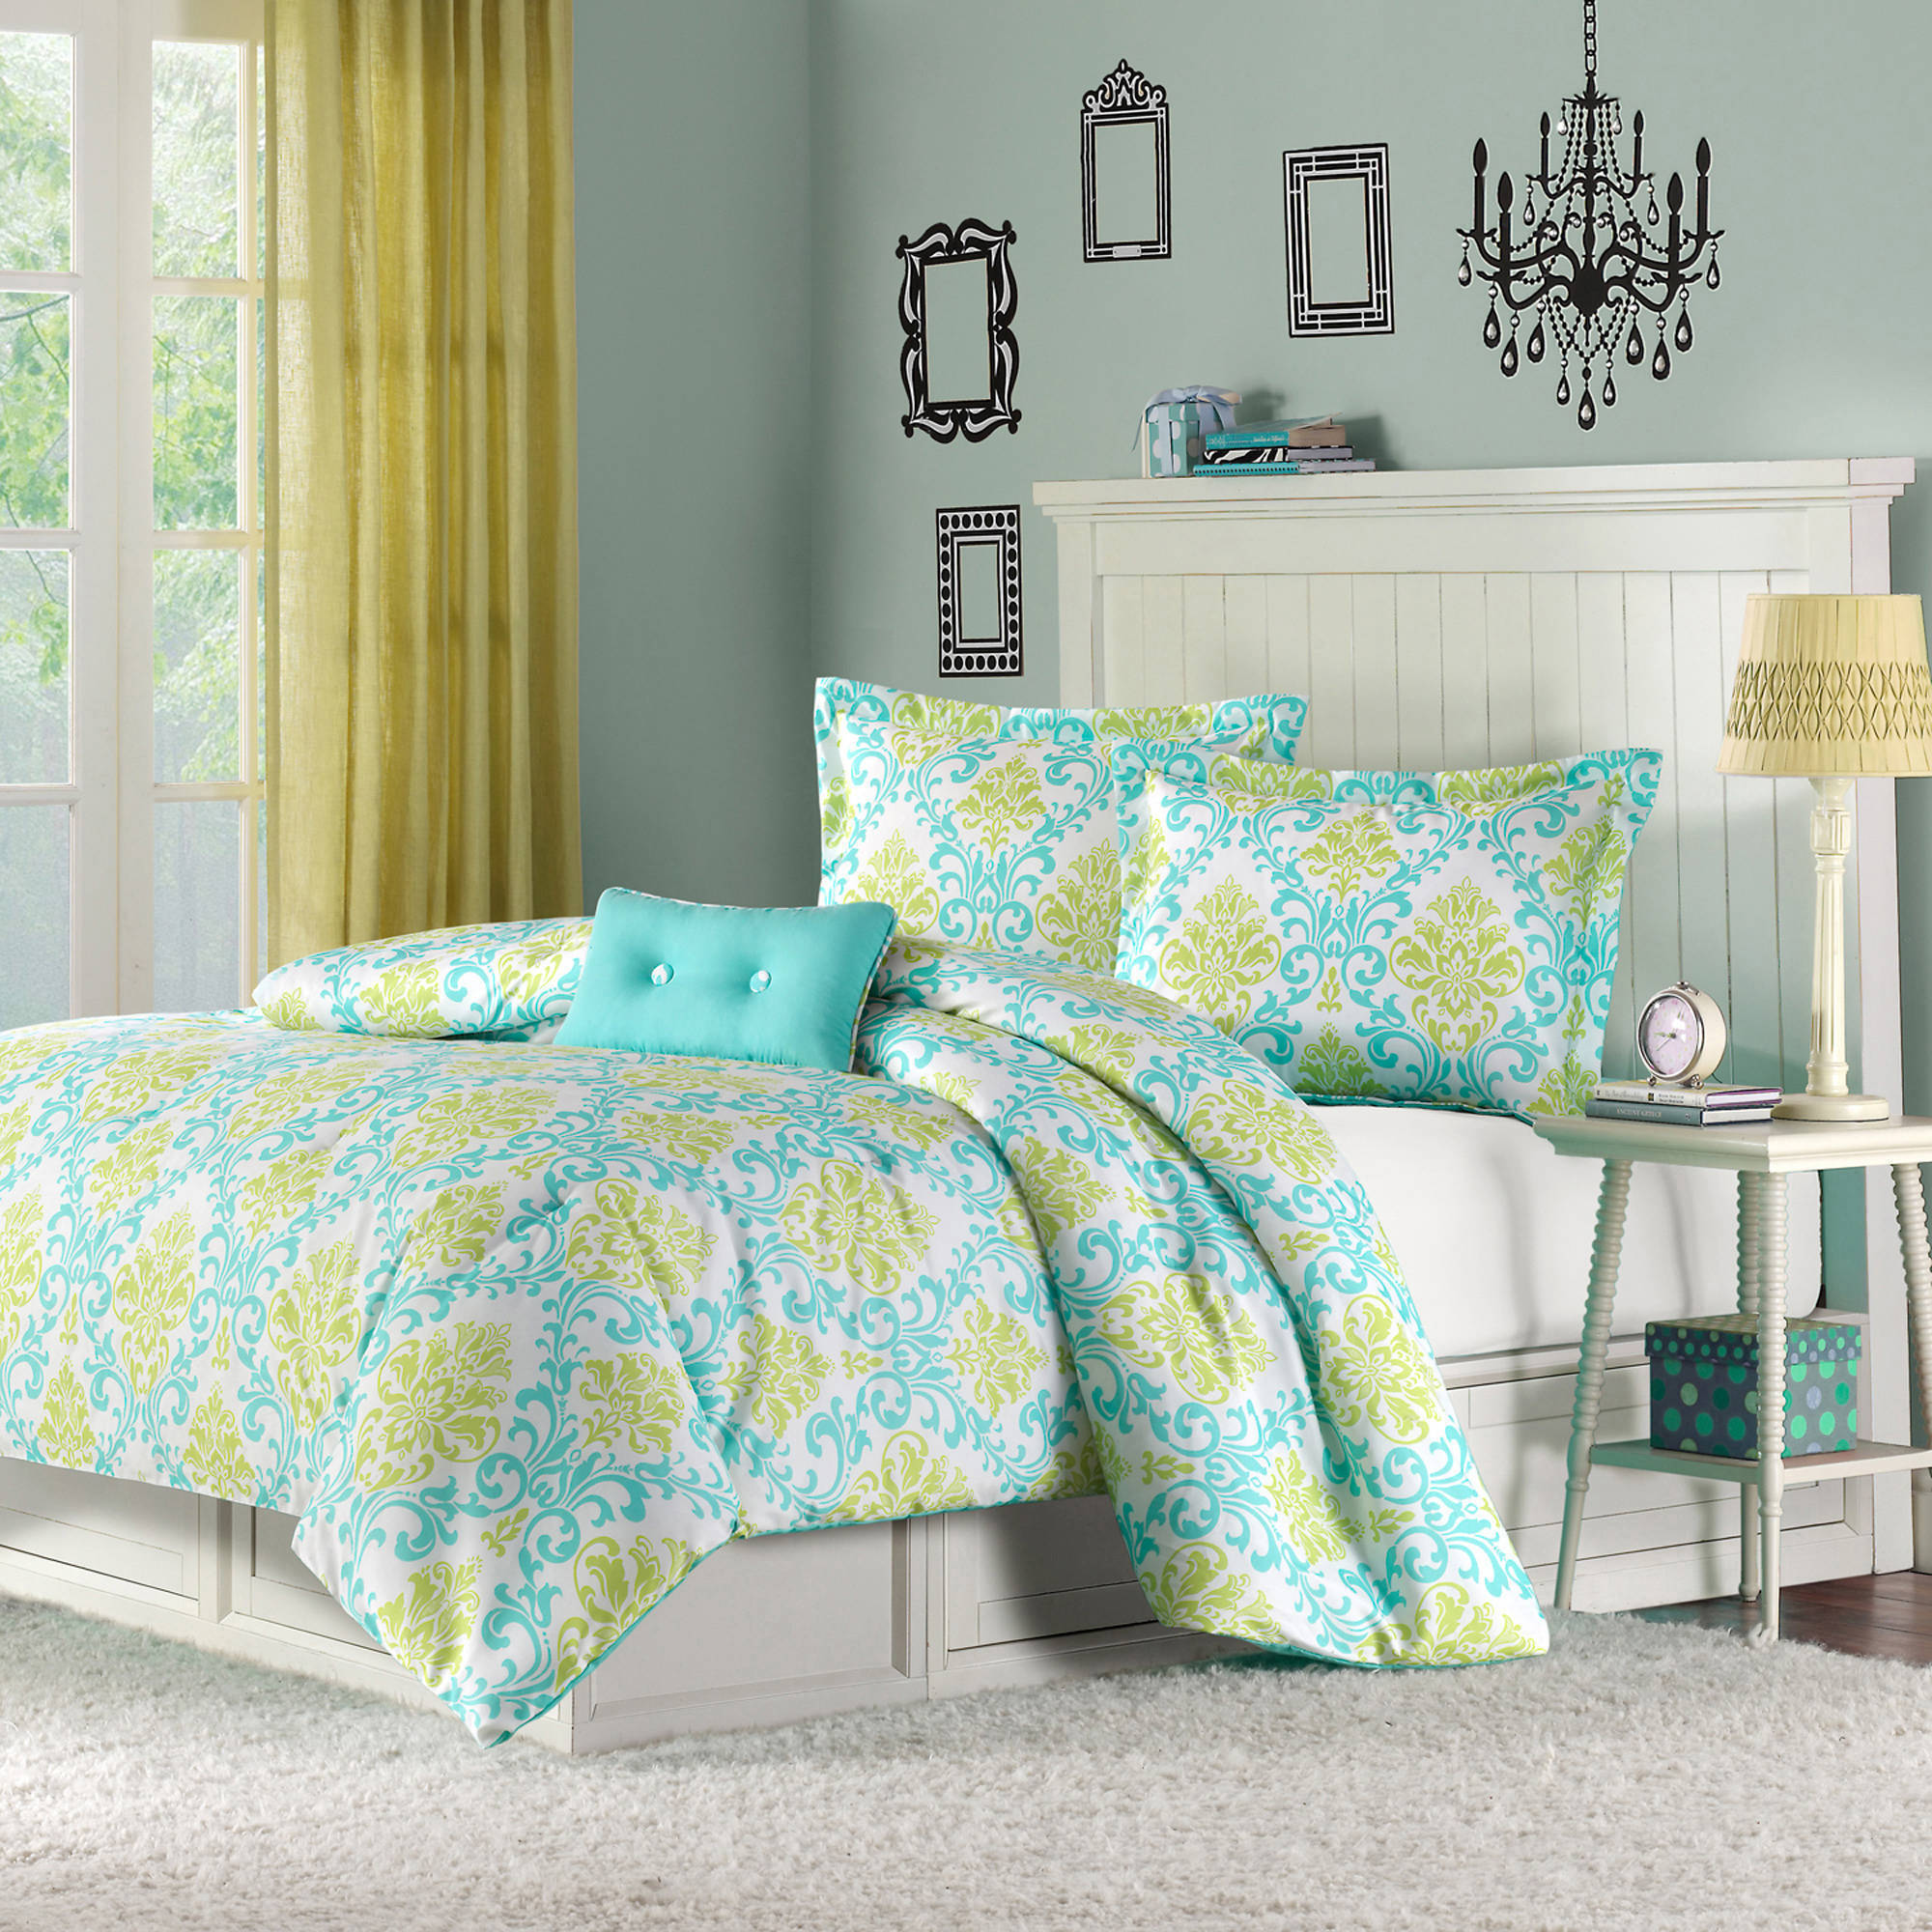 Home Essence Teen Bella Printed Comforter Bedding Set